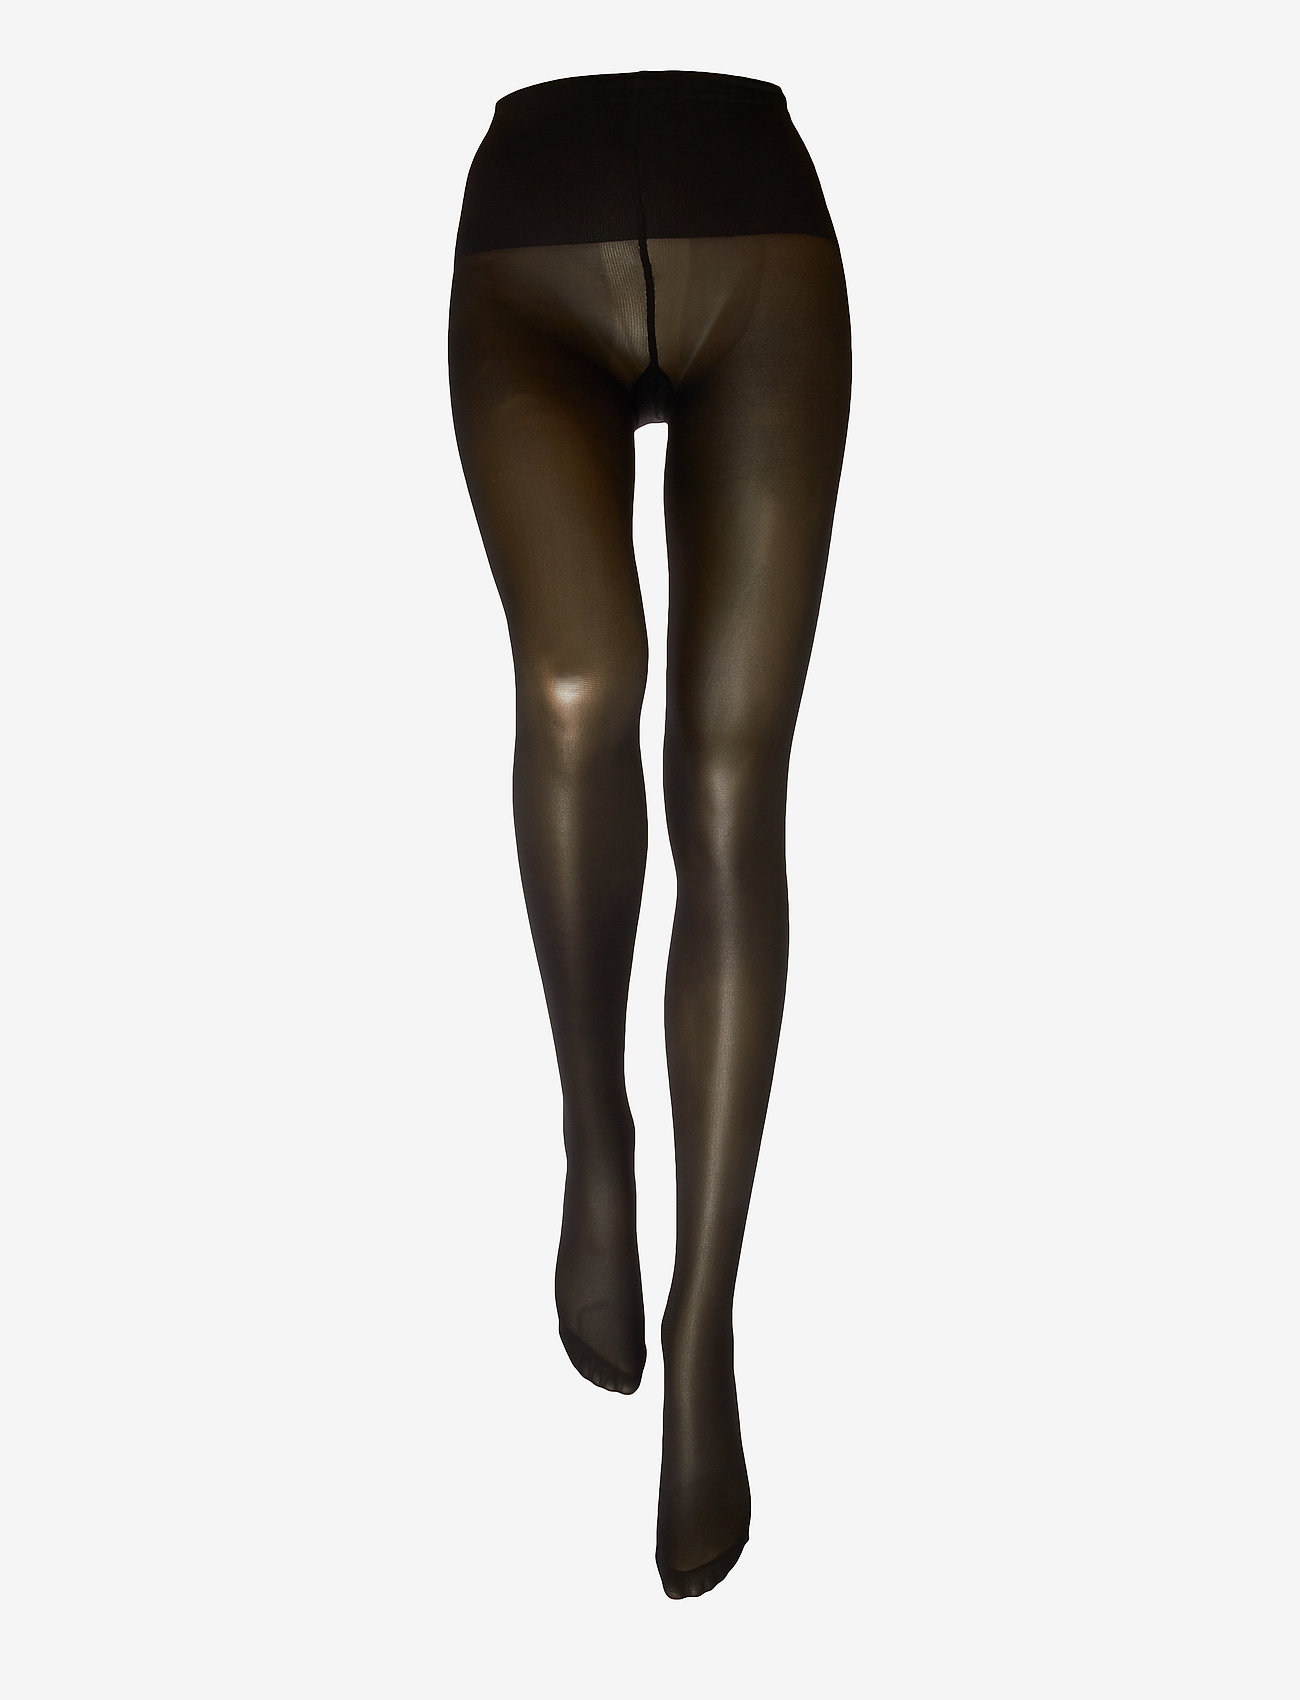 Svea Premium Tights 30d (Black) - Swedish Stockings HFAAmw